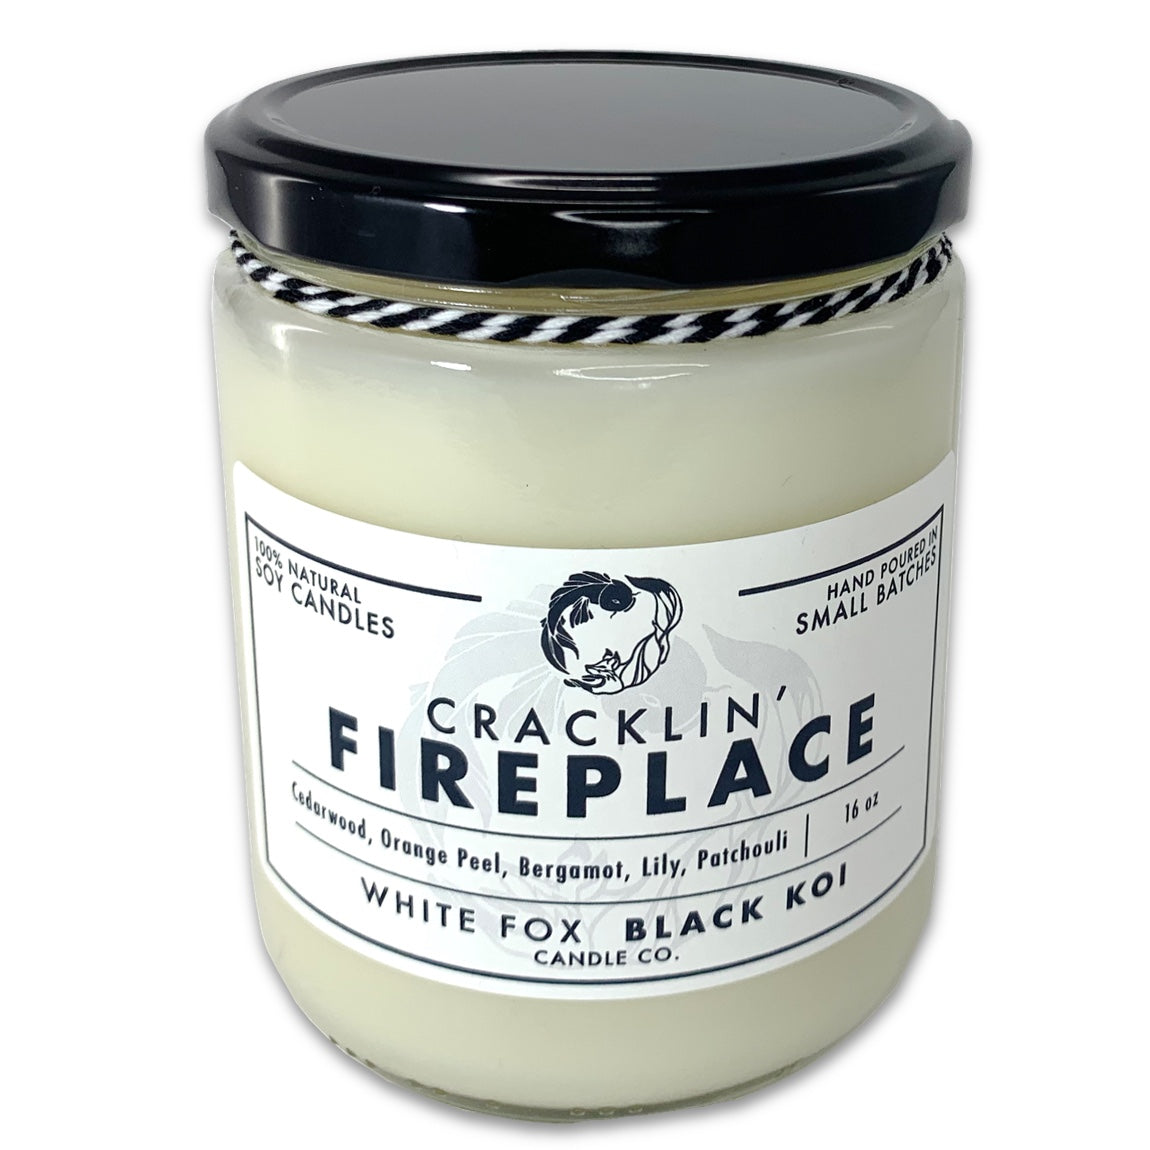 Cracklin' Fireplace Scented Soy Candle